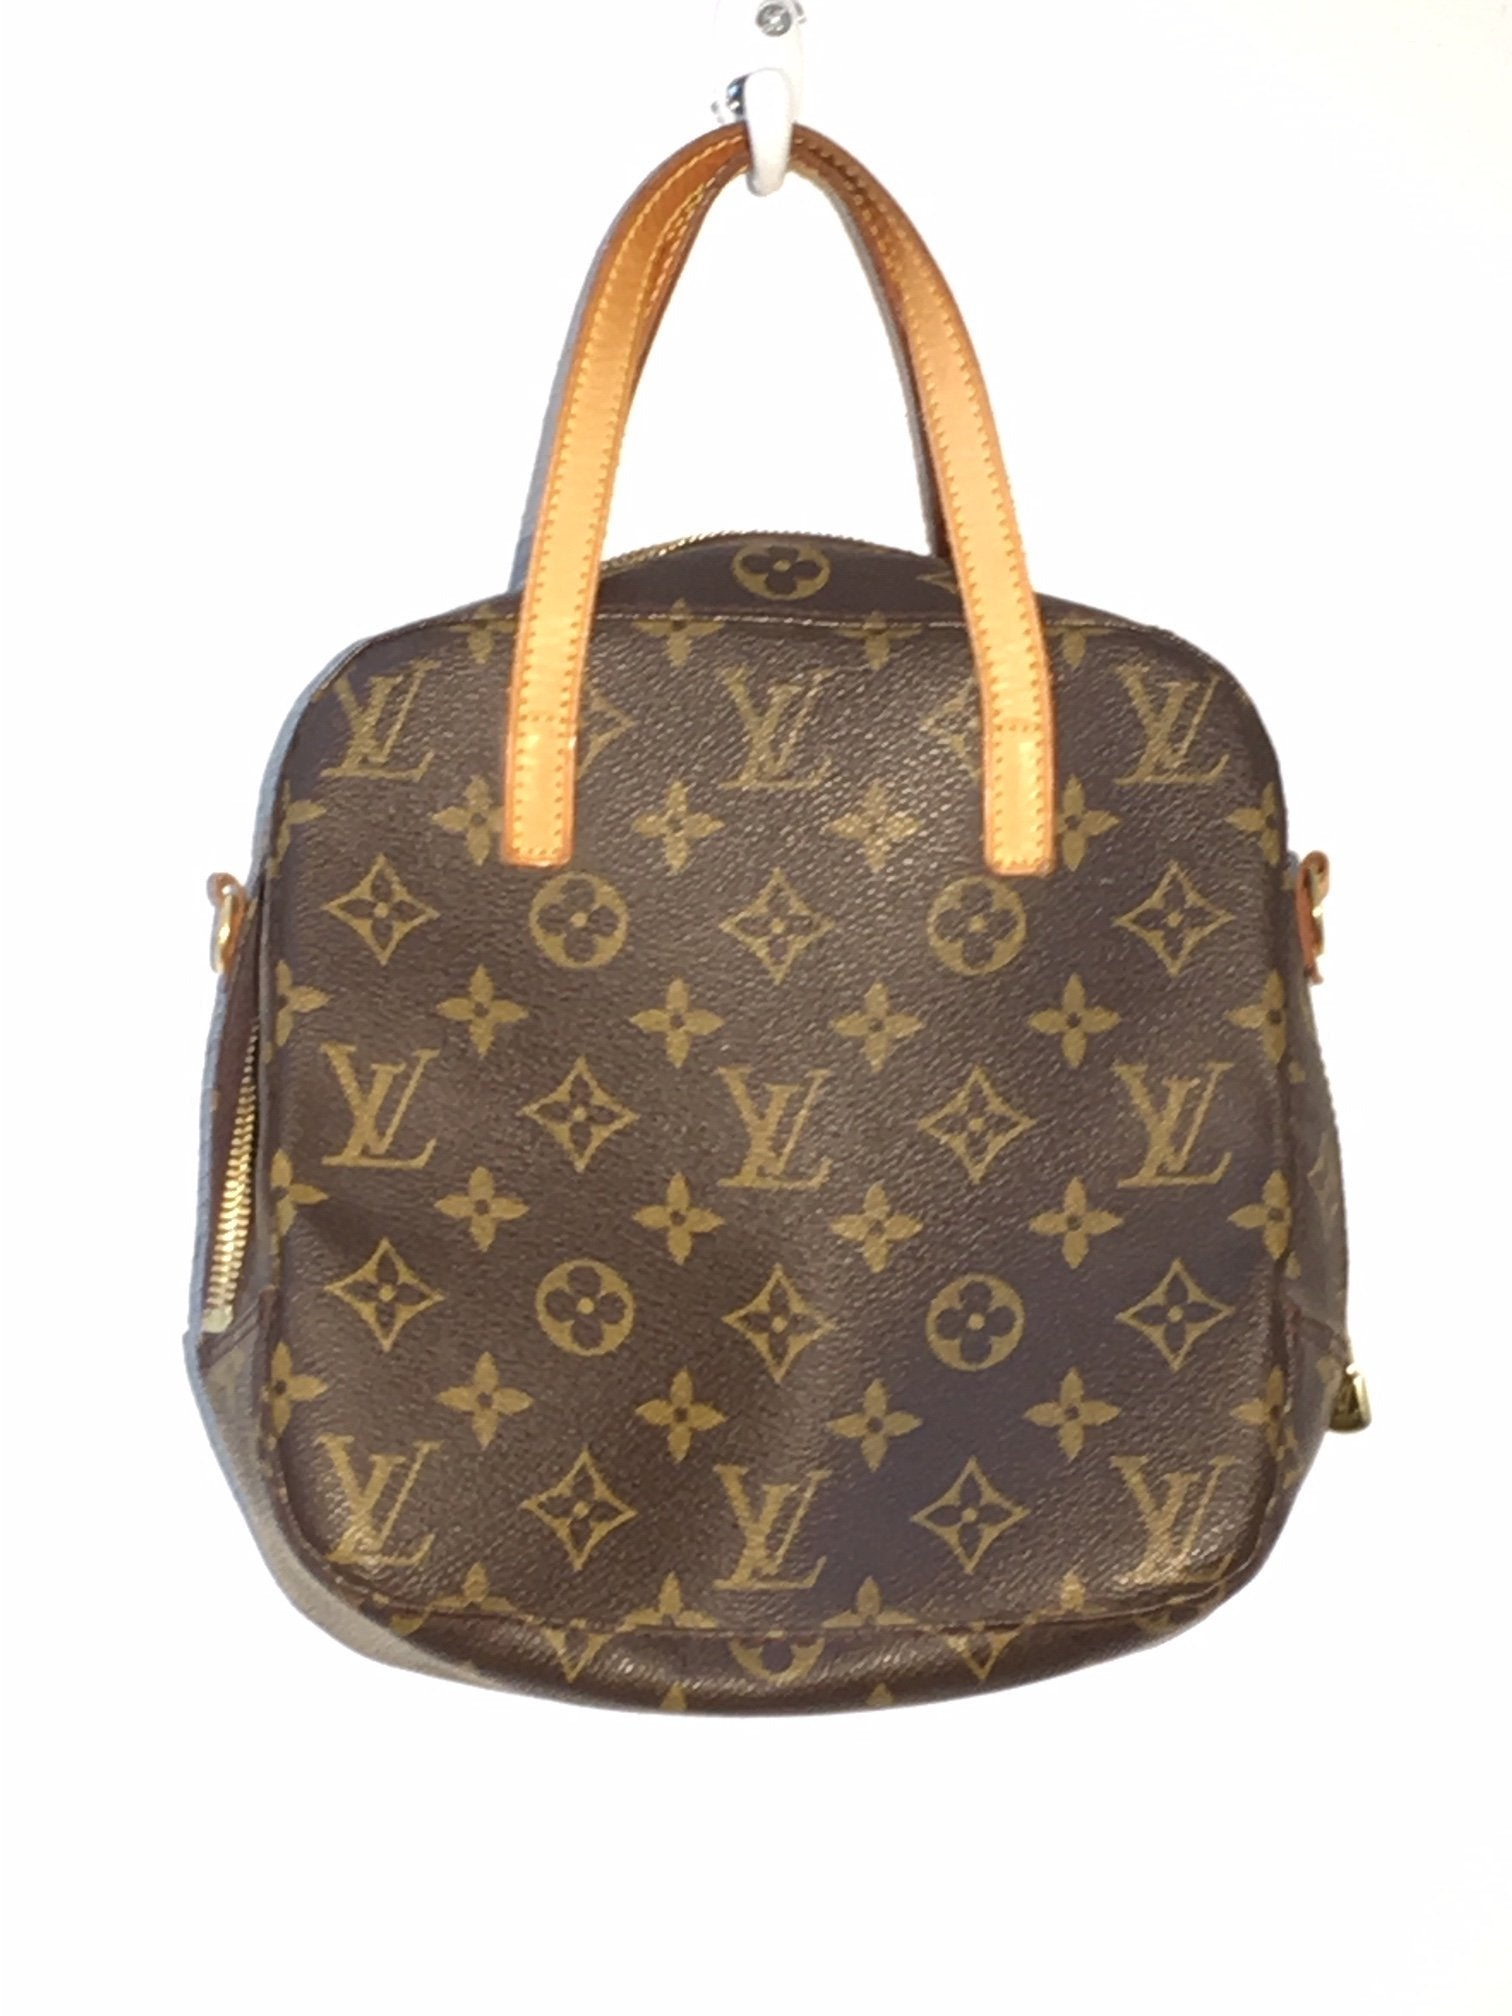 Vintage Louis Vuitton Makeup Bag, SOLD